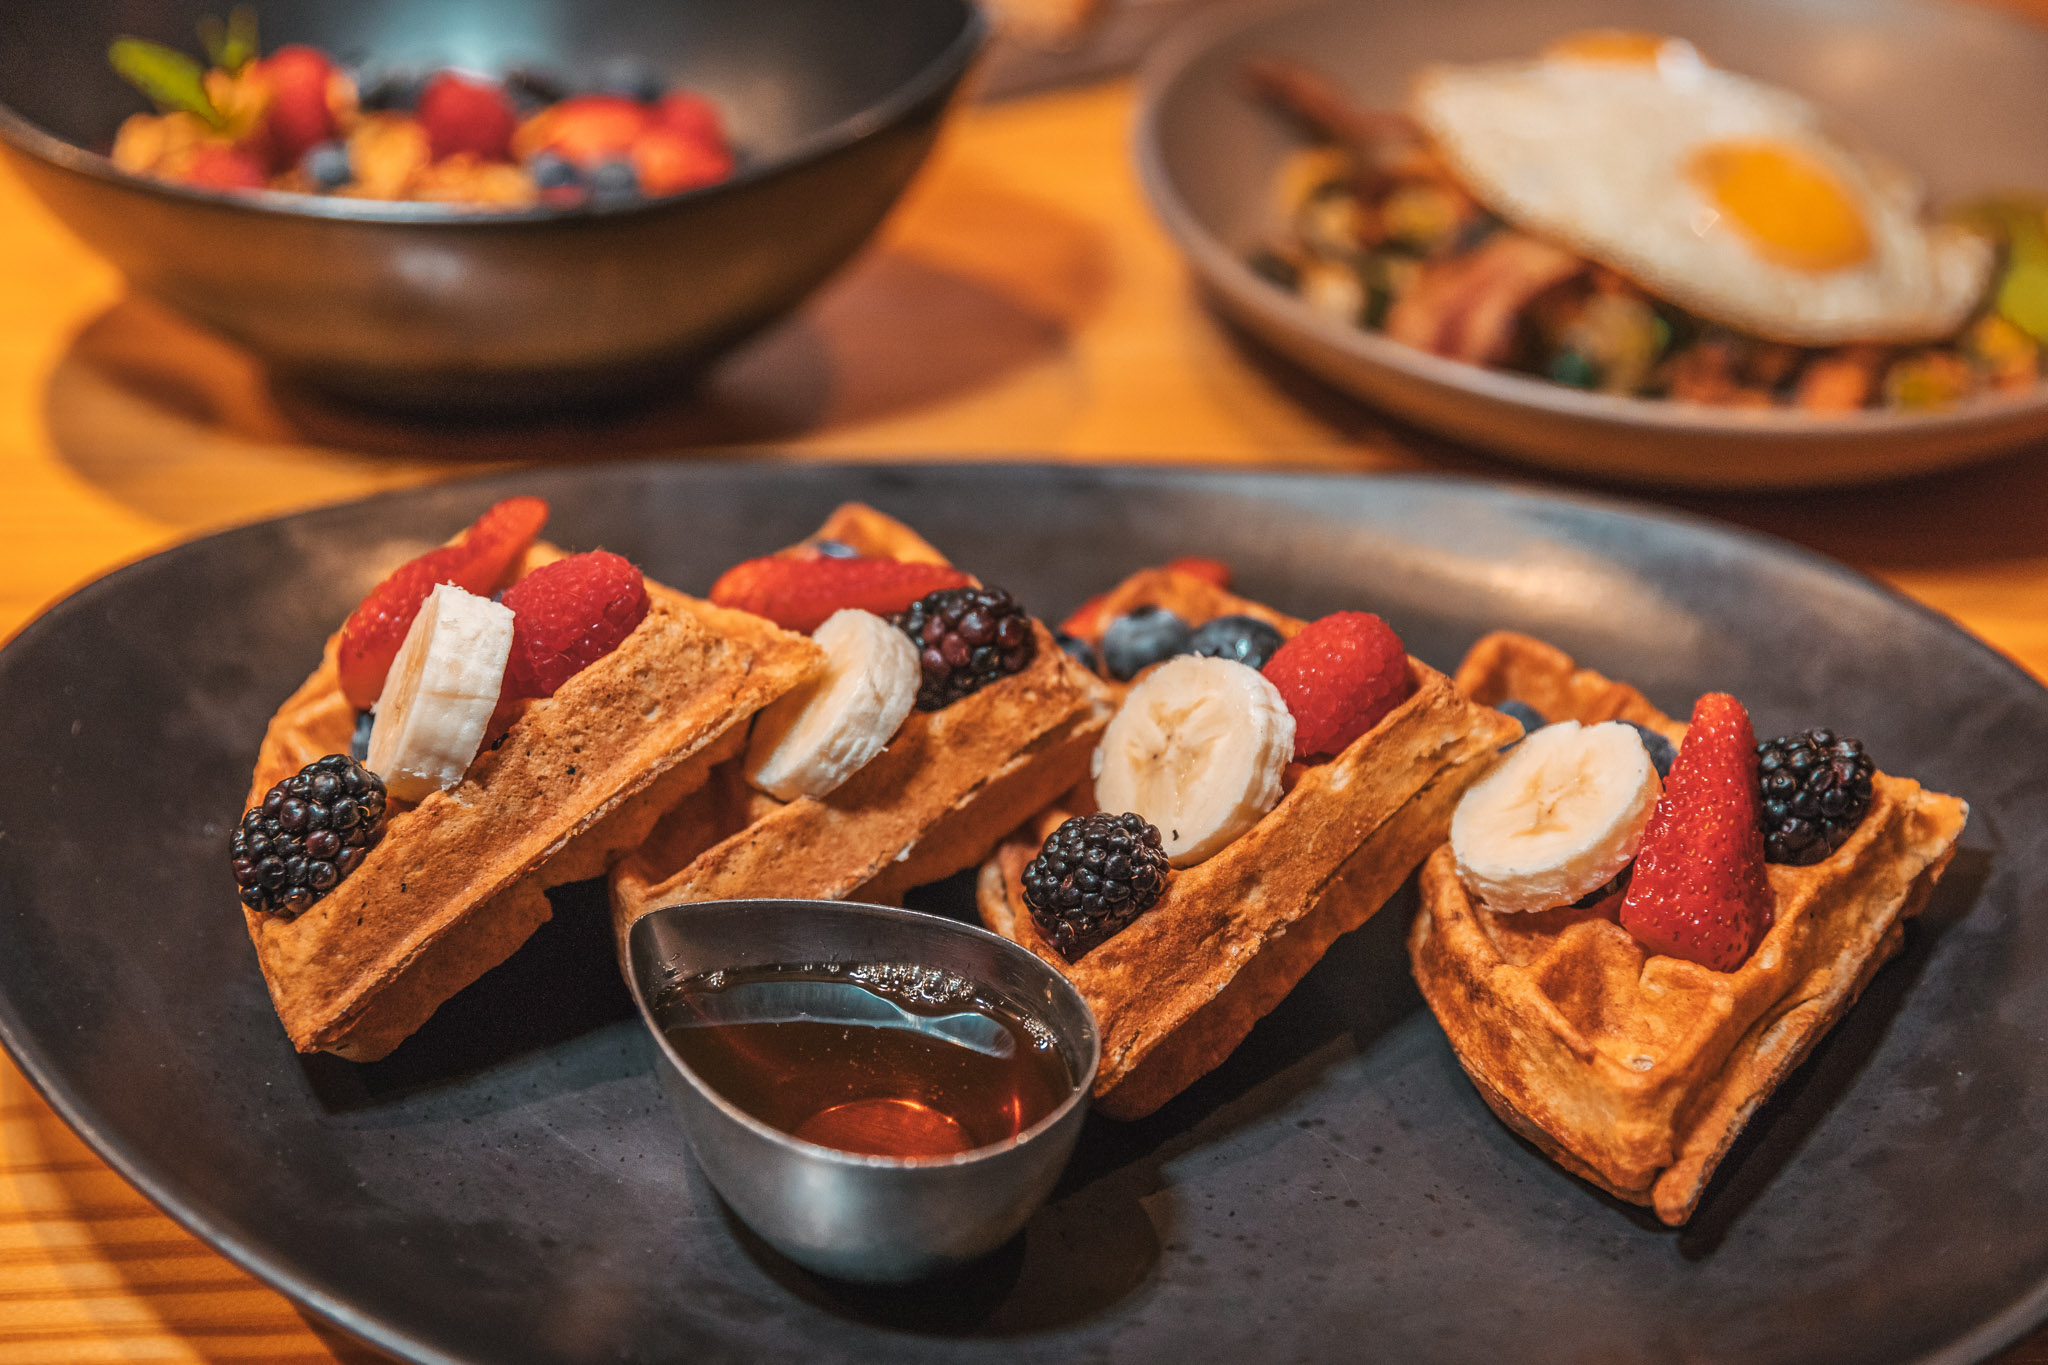 Waffles brunch at Righteous Foods on Magnolia Avenue in Fort Worth